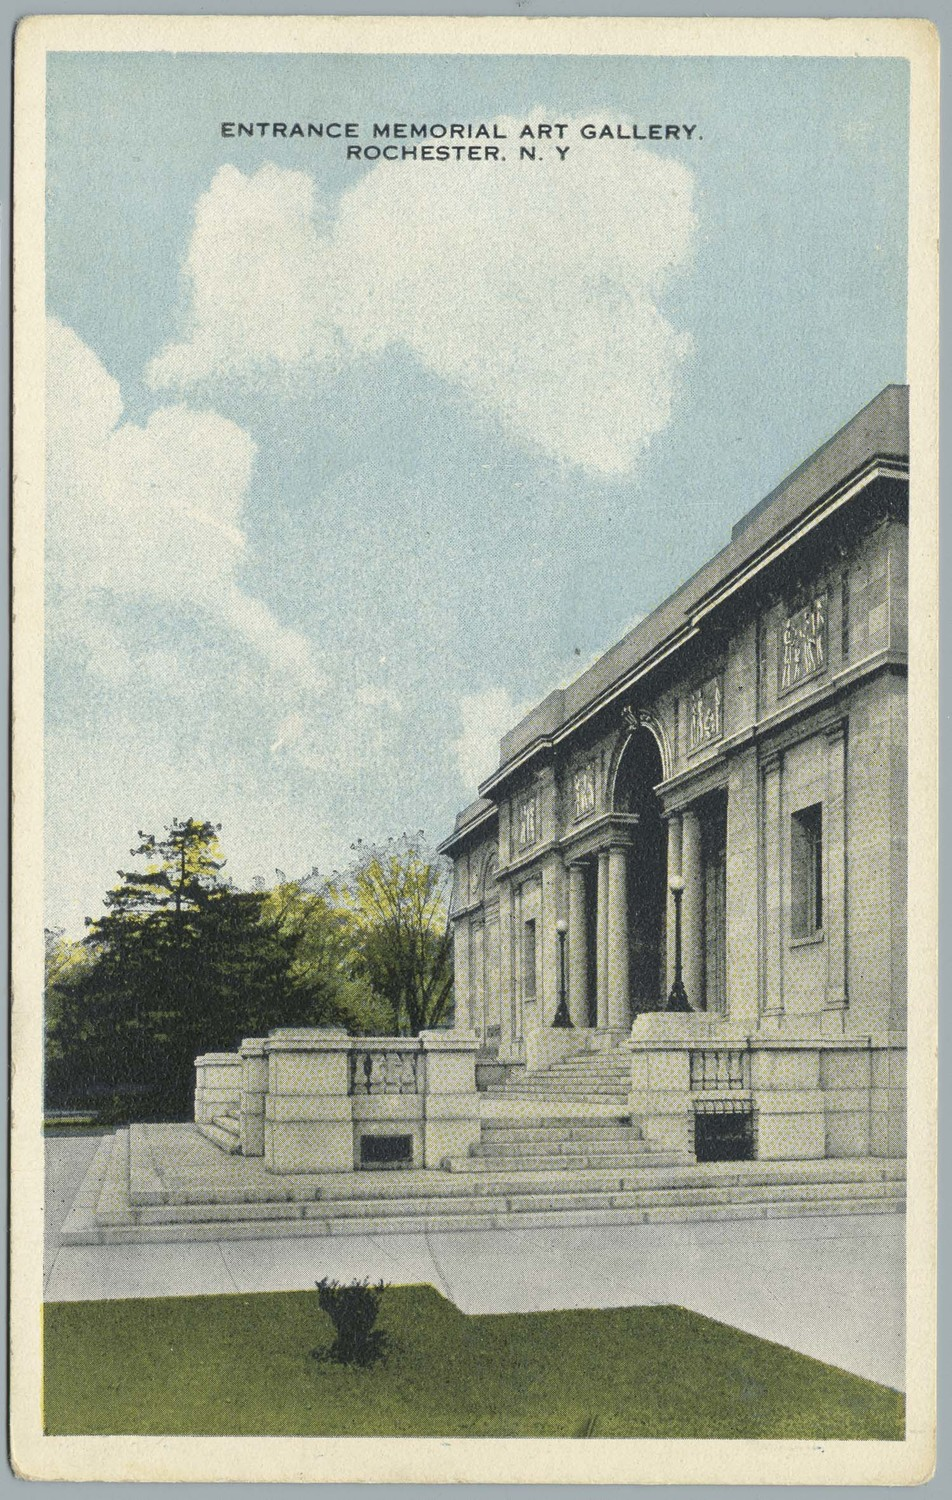 Entrance Memorial Art Gallery. Rochester, N.Y.